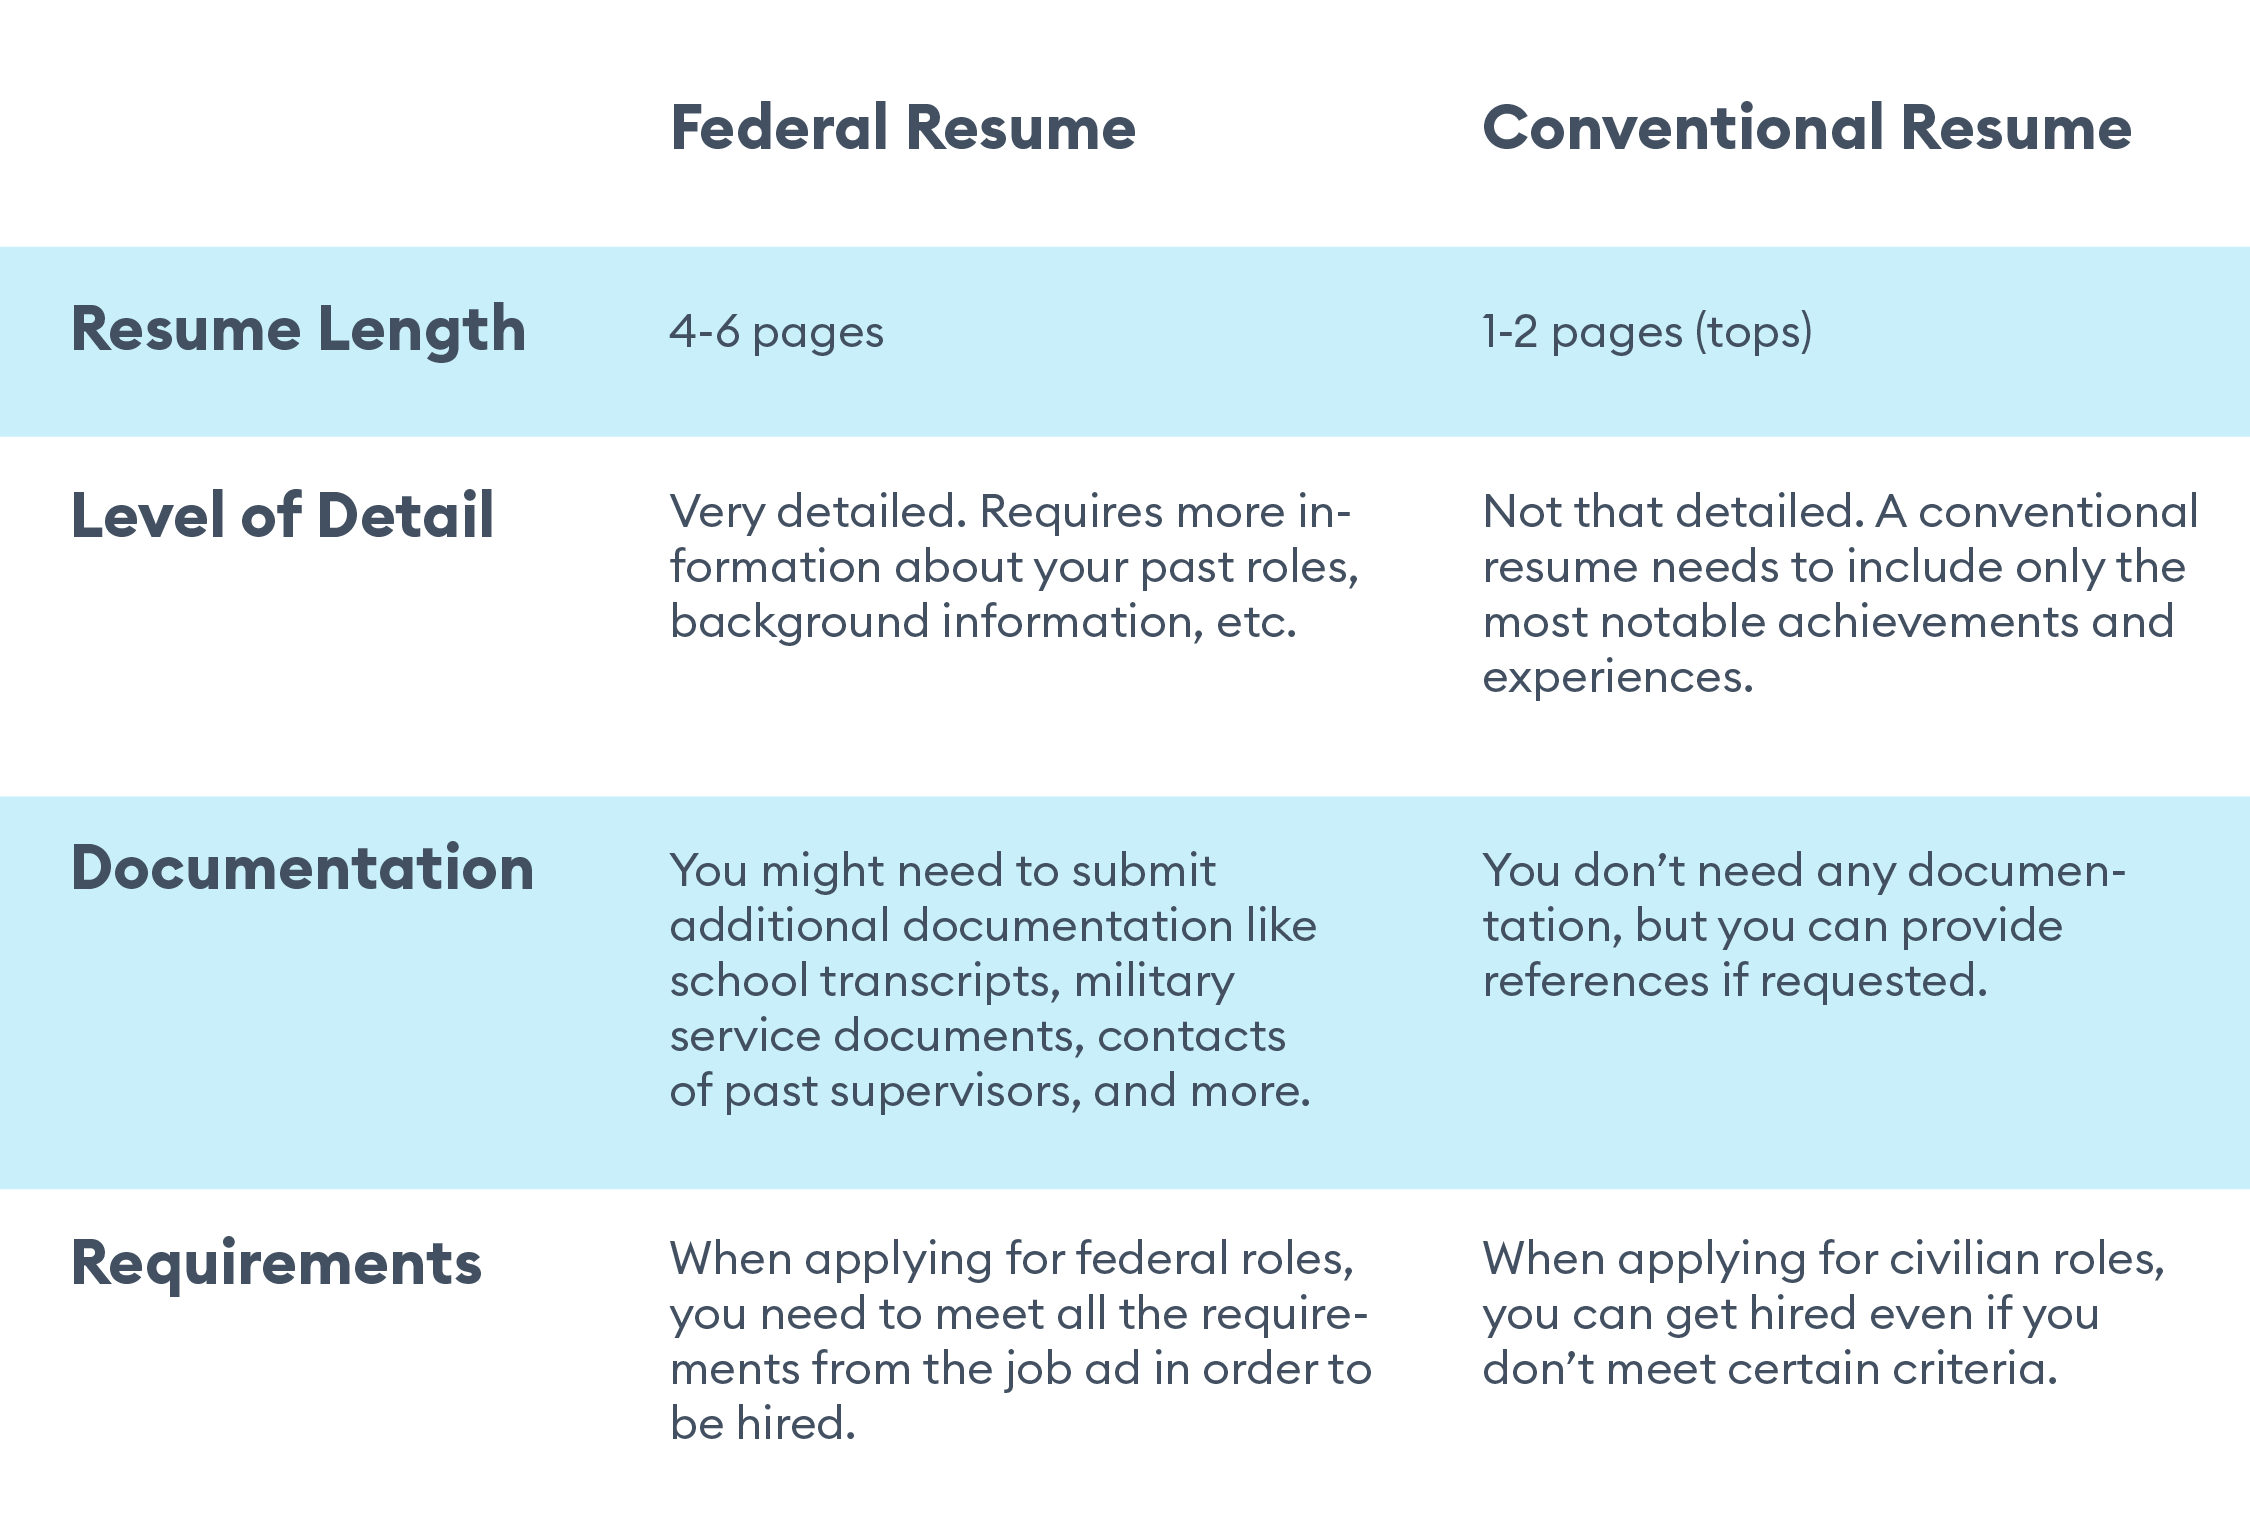 federal resume differences